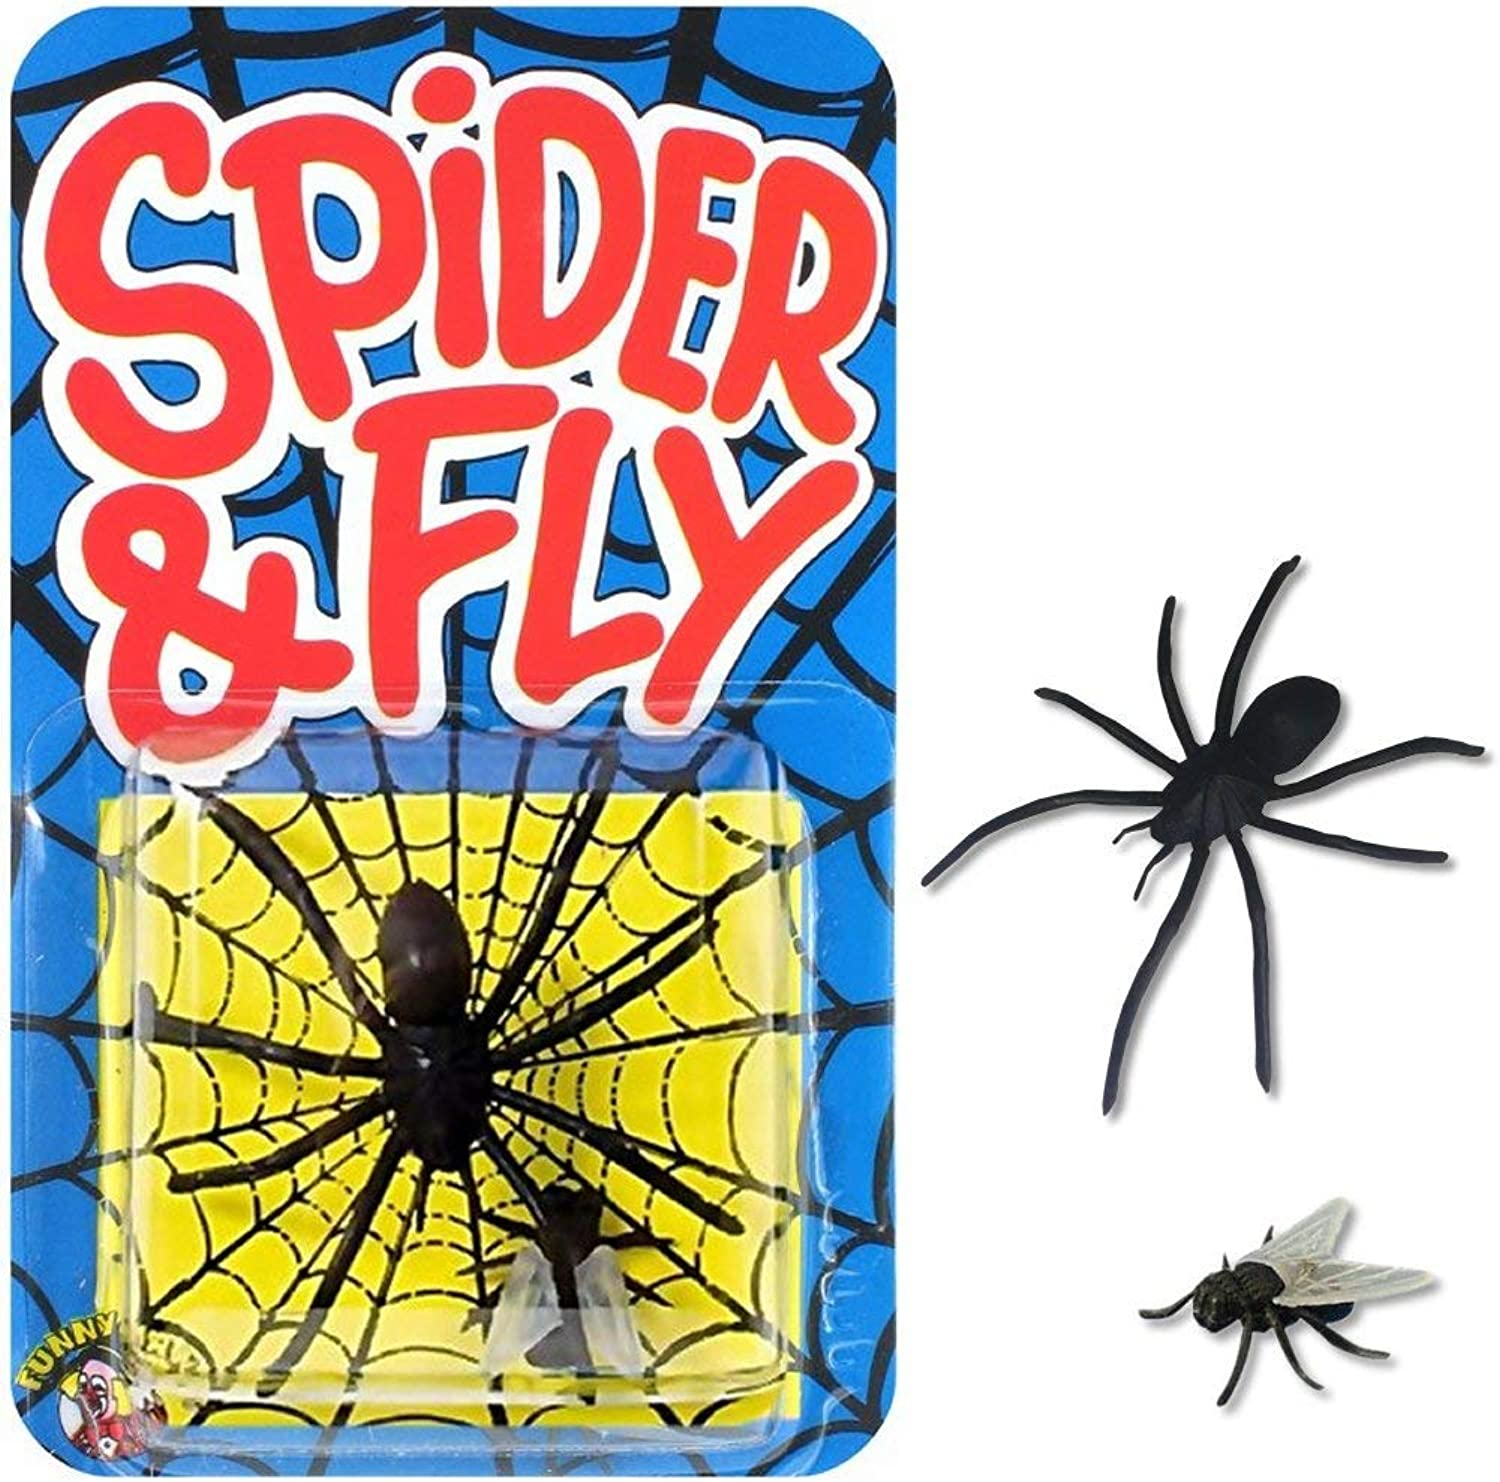 Novelty Joke Gag Trick Spider and Fly By Funnyman x 1 for Party Bag Filler Favor by Pams